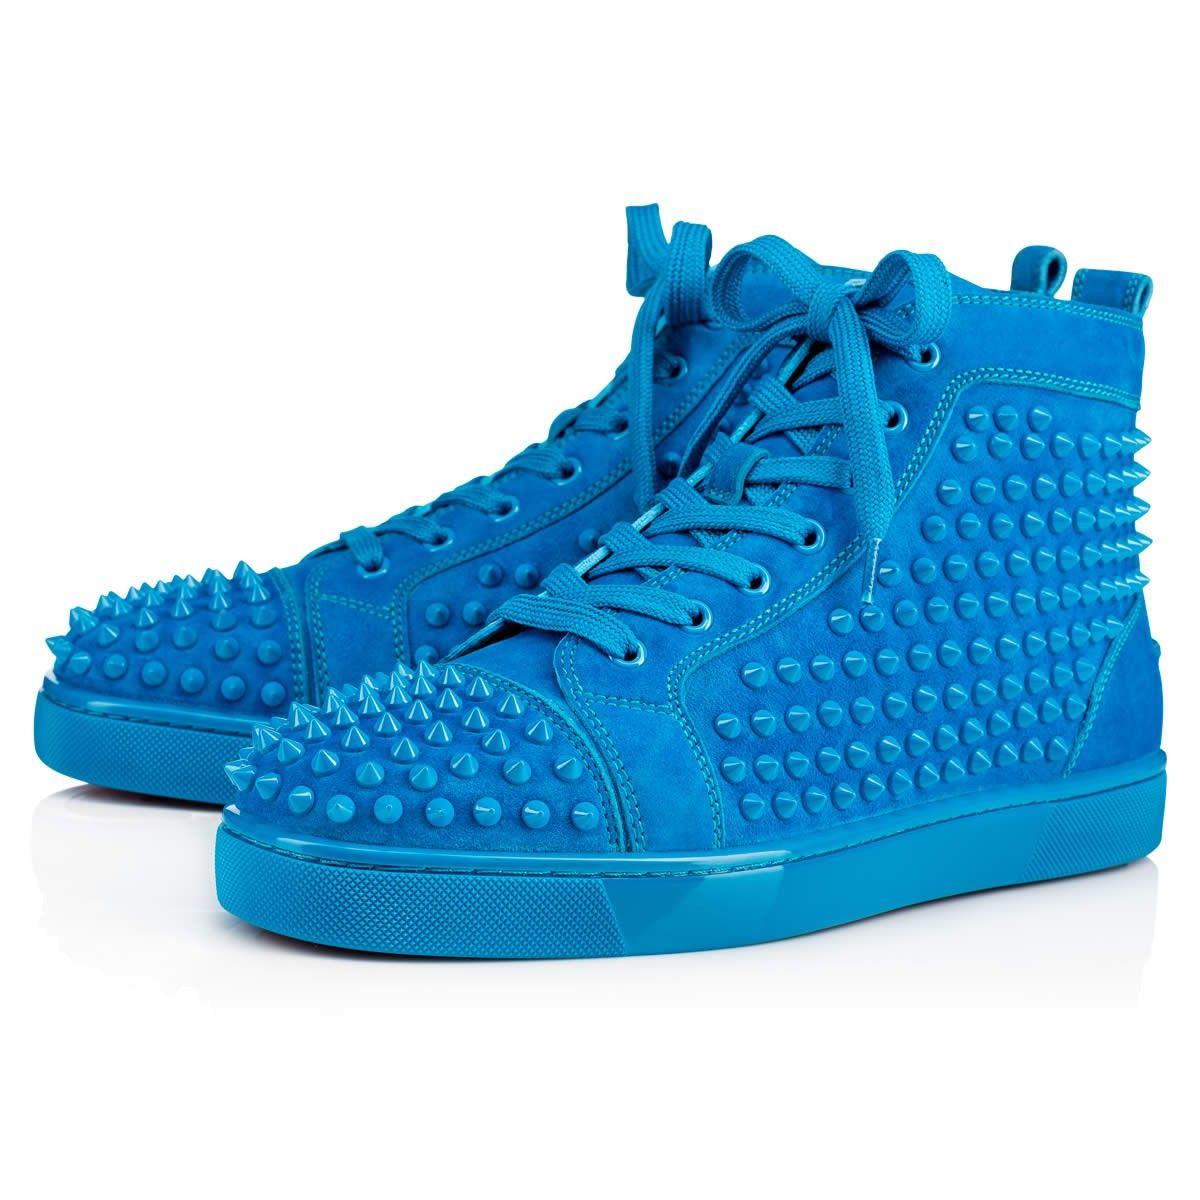 2c19656bae0 CHRISTIAN LOUBOUTIN Louis Spikes Men S Flat Egyptian Blue Suede - Men Shoes  - Christian Louboutin.  christianlouboutin  shoes